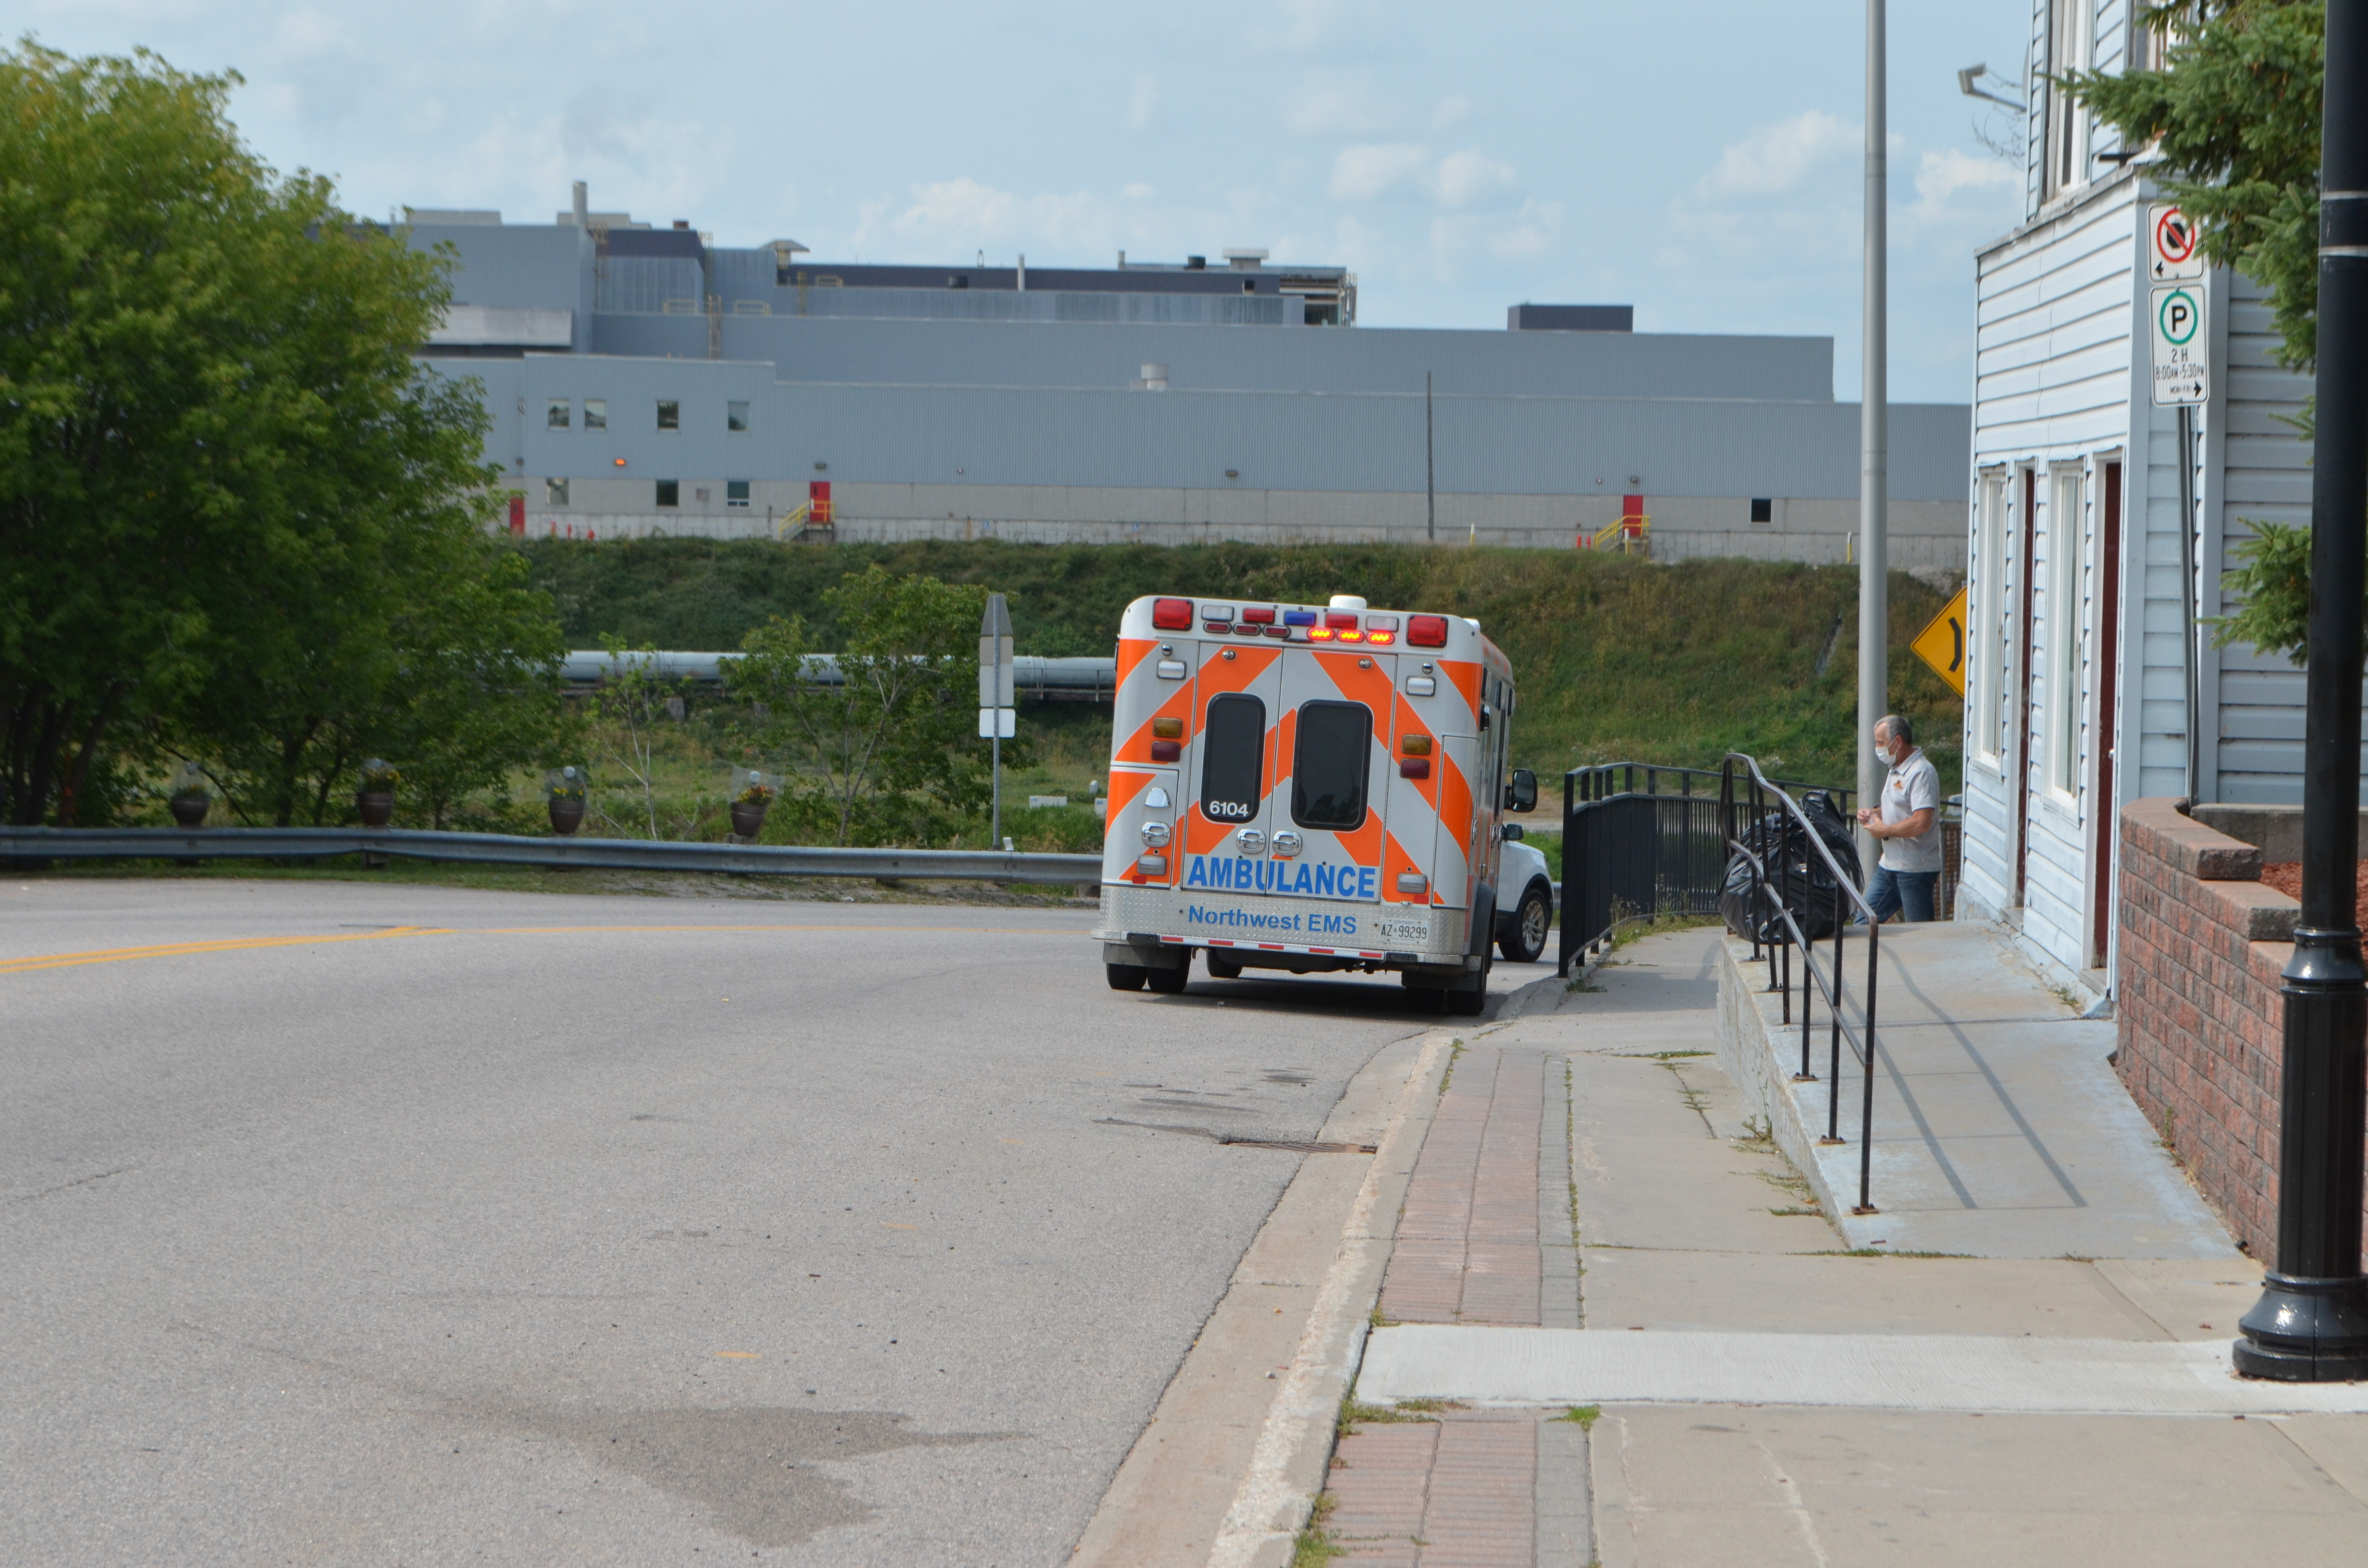 An ambulance responds to a call in downtown Dryden. (Logan Turner/CBC)